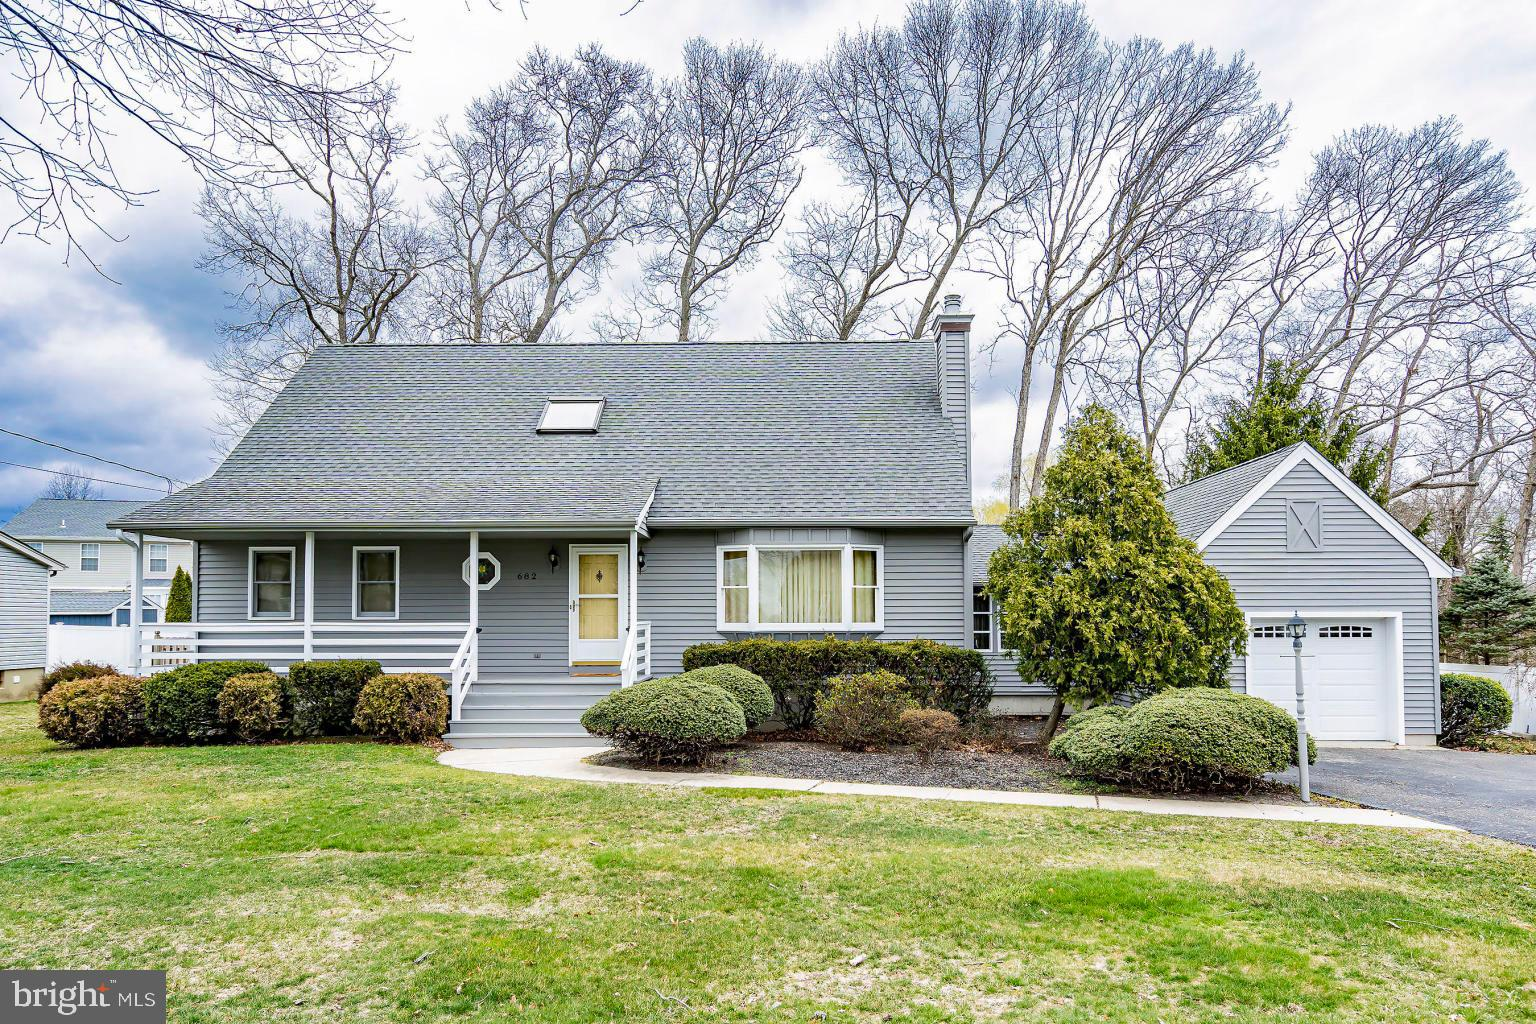 682 LONGVIEW DRIVE, TOMS RIVER, NJ 08753